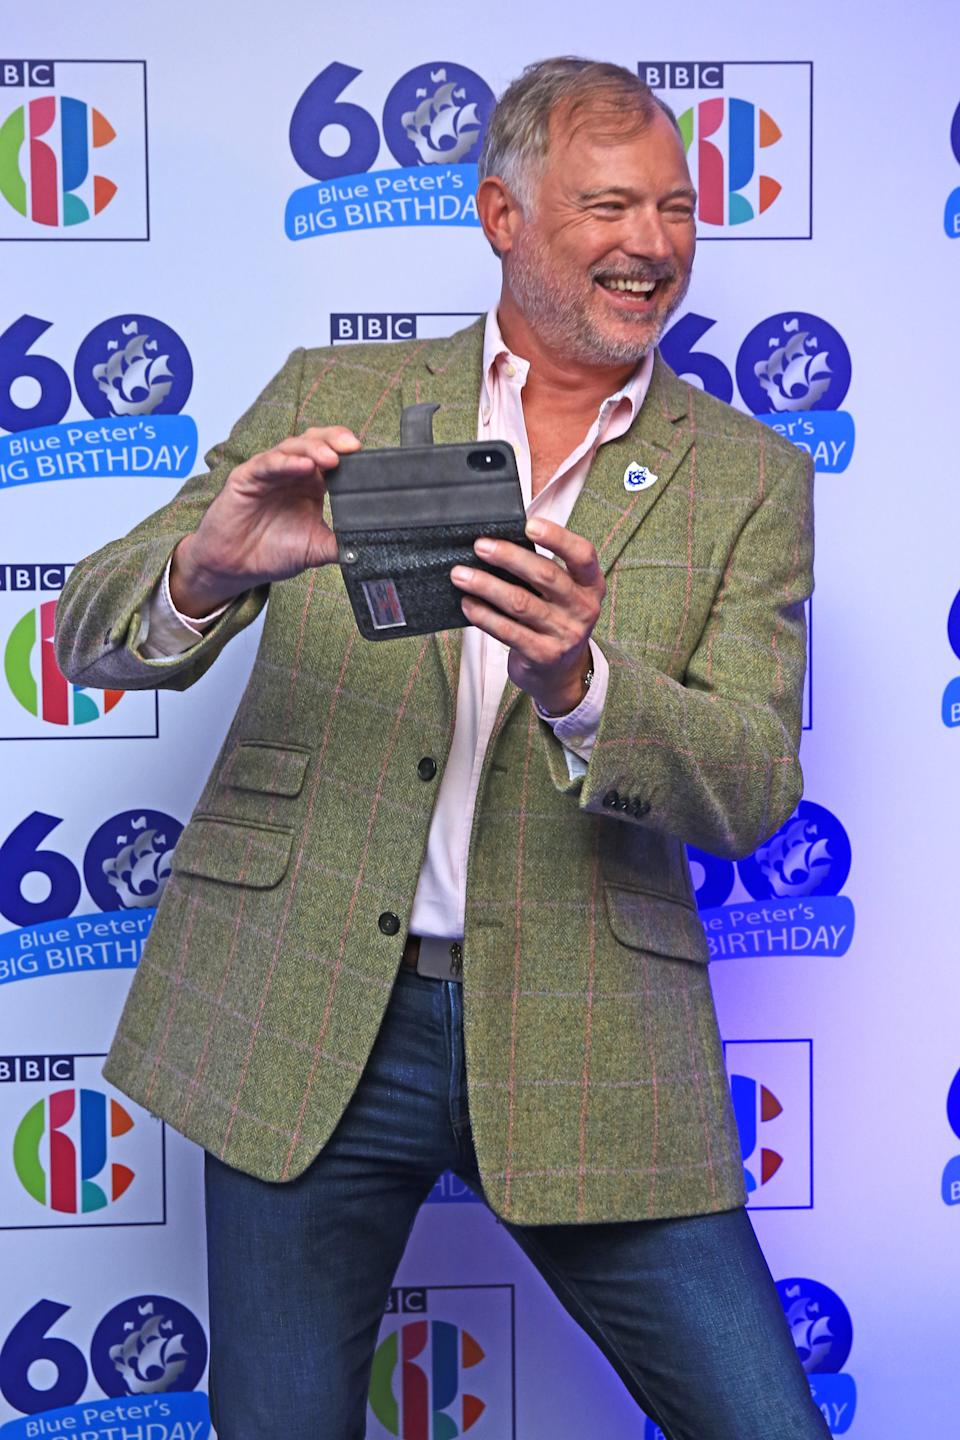 John Leslie attends Blue Peter's Big Birthday, celebrating the show's 60th anniversary, at the BBC Philharmonic Studio at Media City UK, Salford. (Photo by Peter Byrne/PA Images via Getty Images)